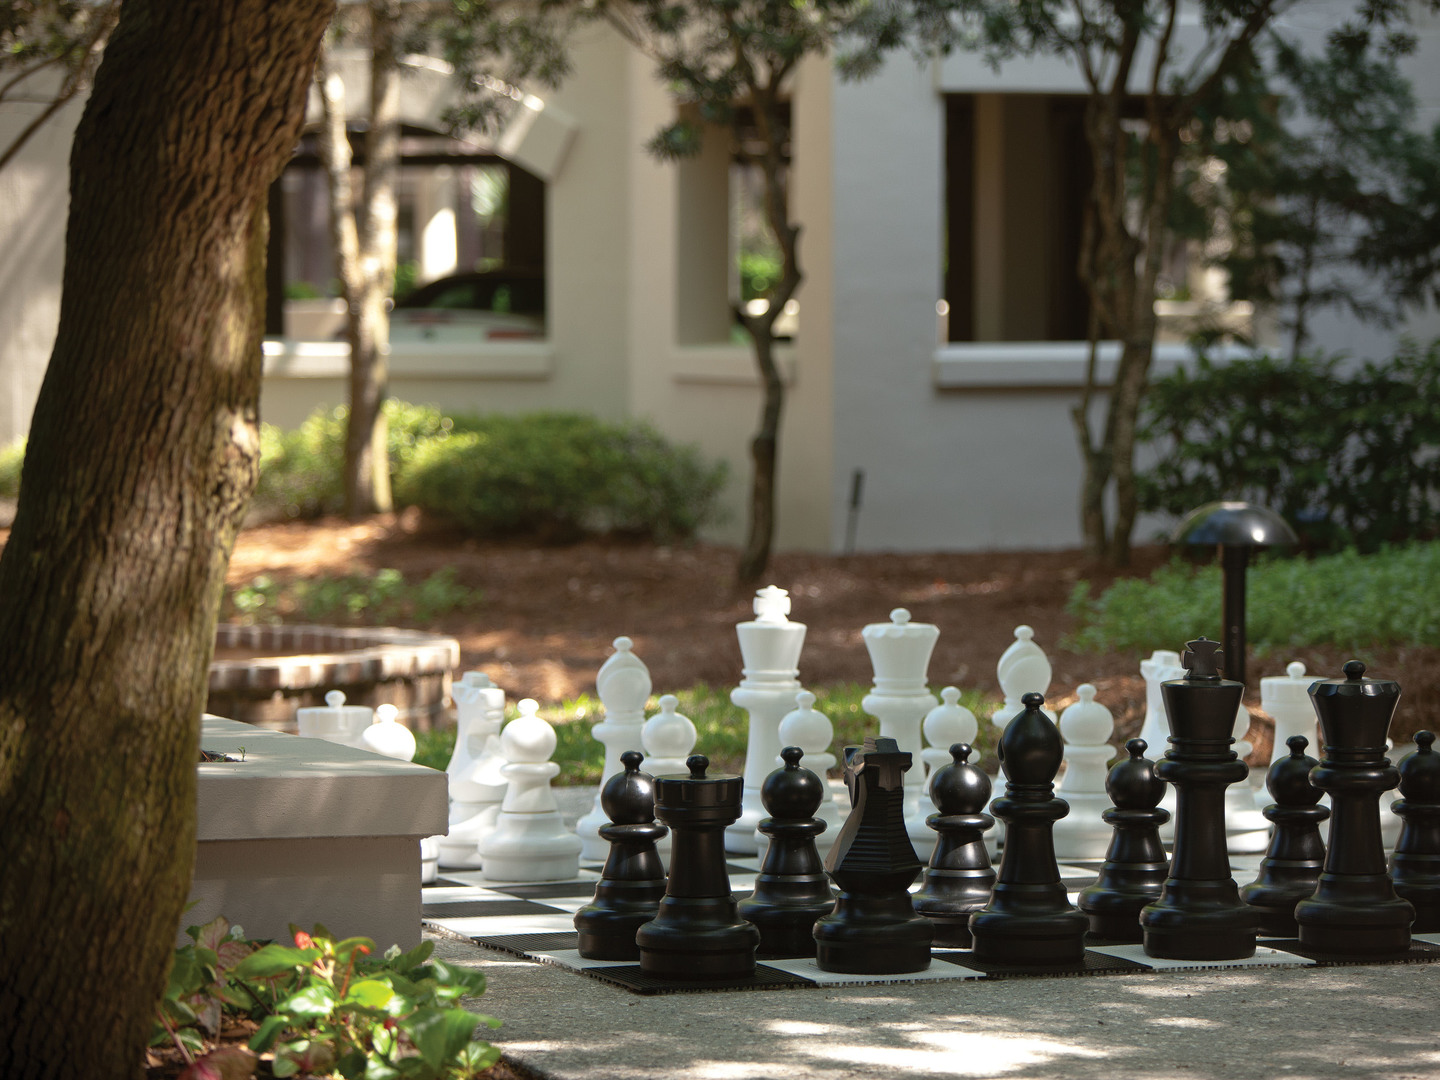 Marriott's Harbour Club Activities/Chess. Marriott's Harbour Club is located in Hilton Head Island, South Carolina United States.